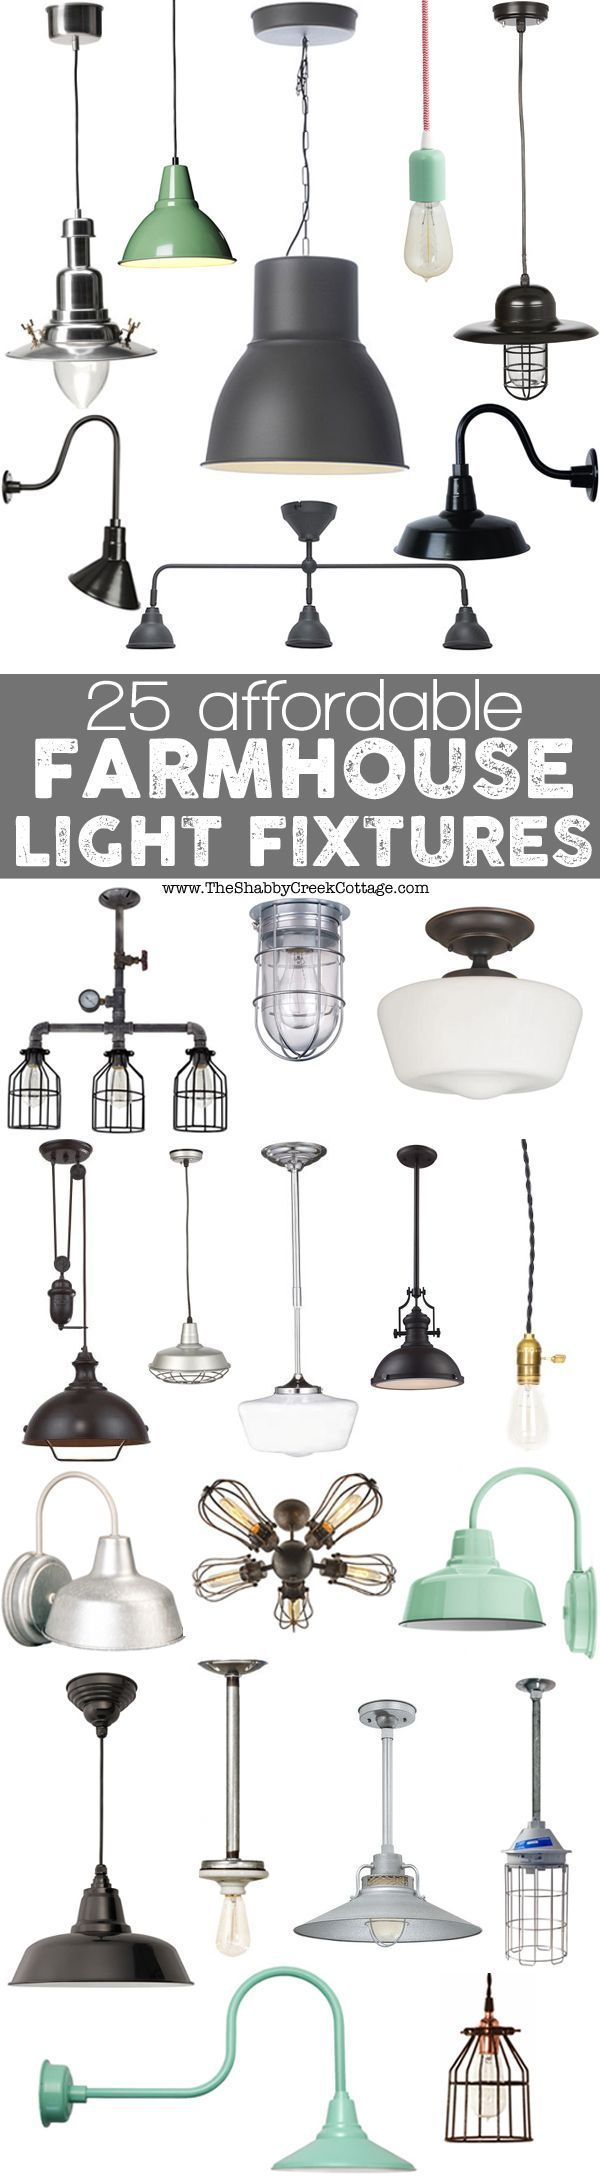 Retro Kitchen Light Fixtures 17 Best Ideas About Vintage Light Fixtures On Pinterest Rustic